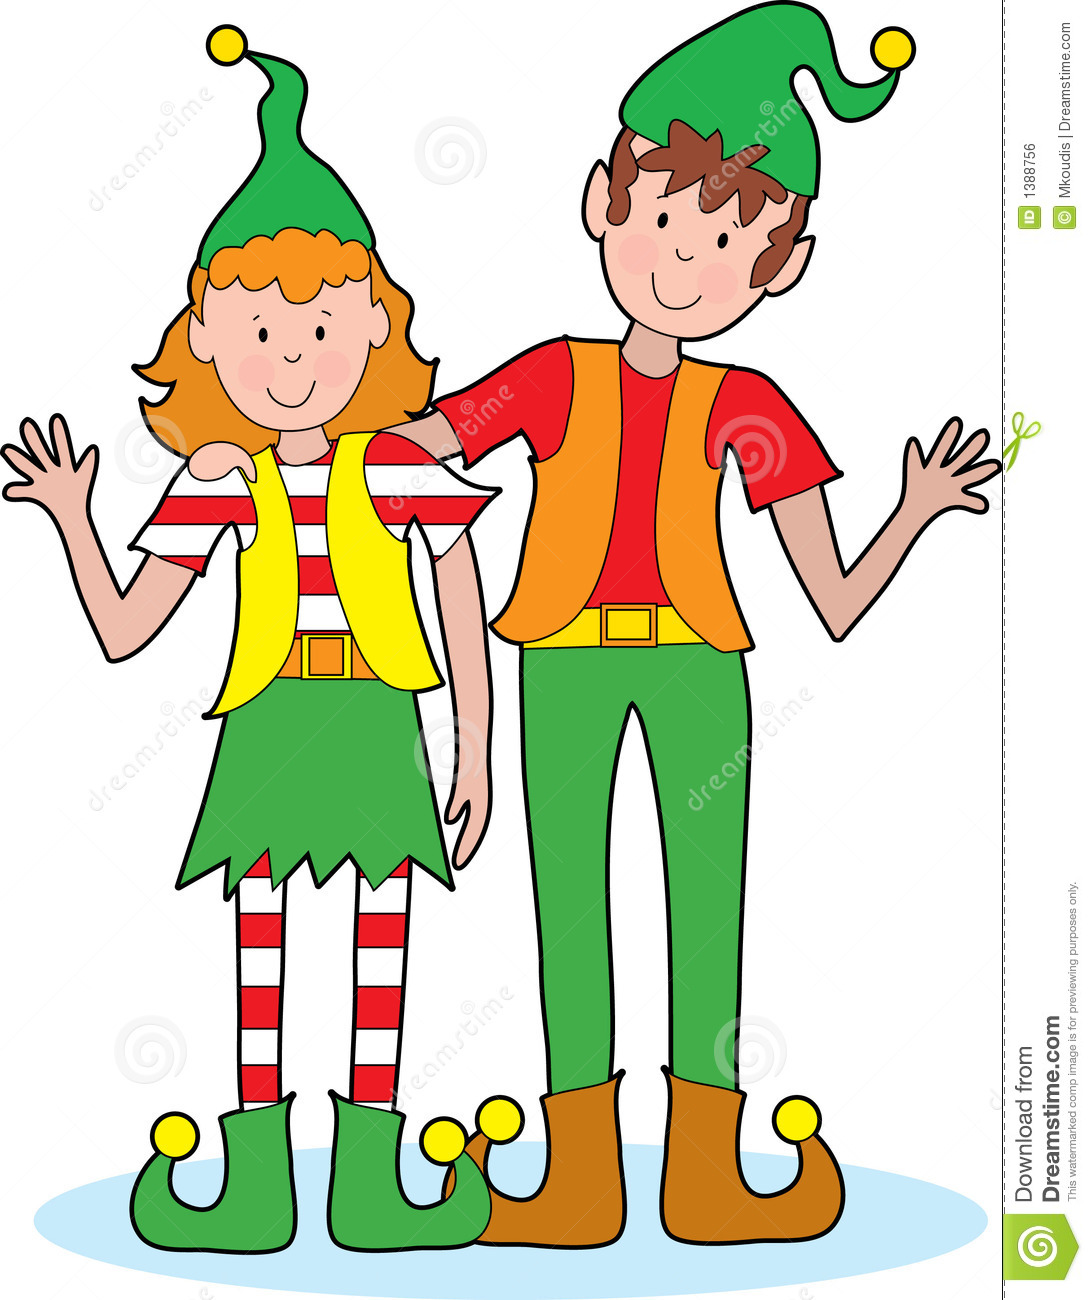 pair of happy Christmas elves waving A pair of happy Christmas elves ...